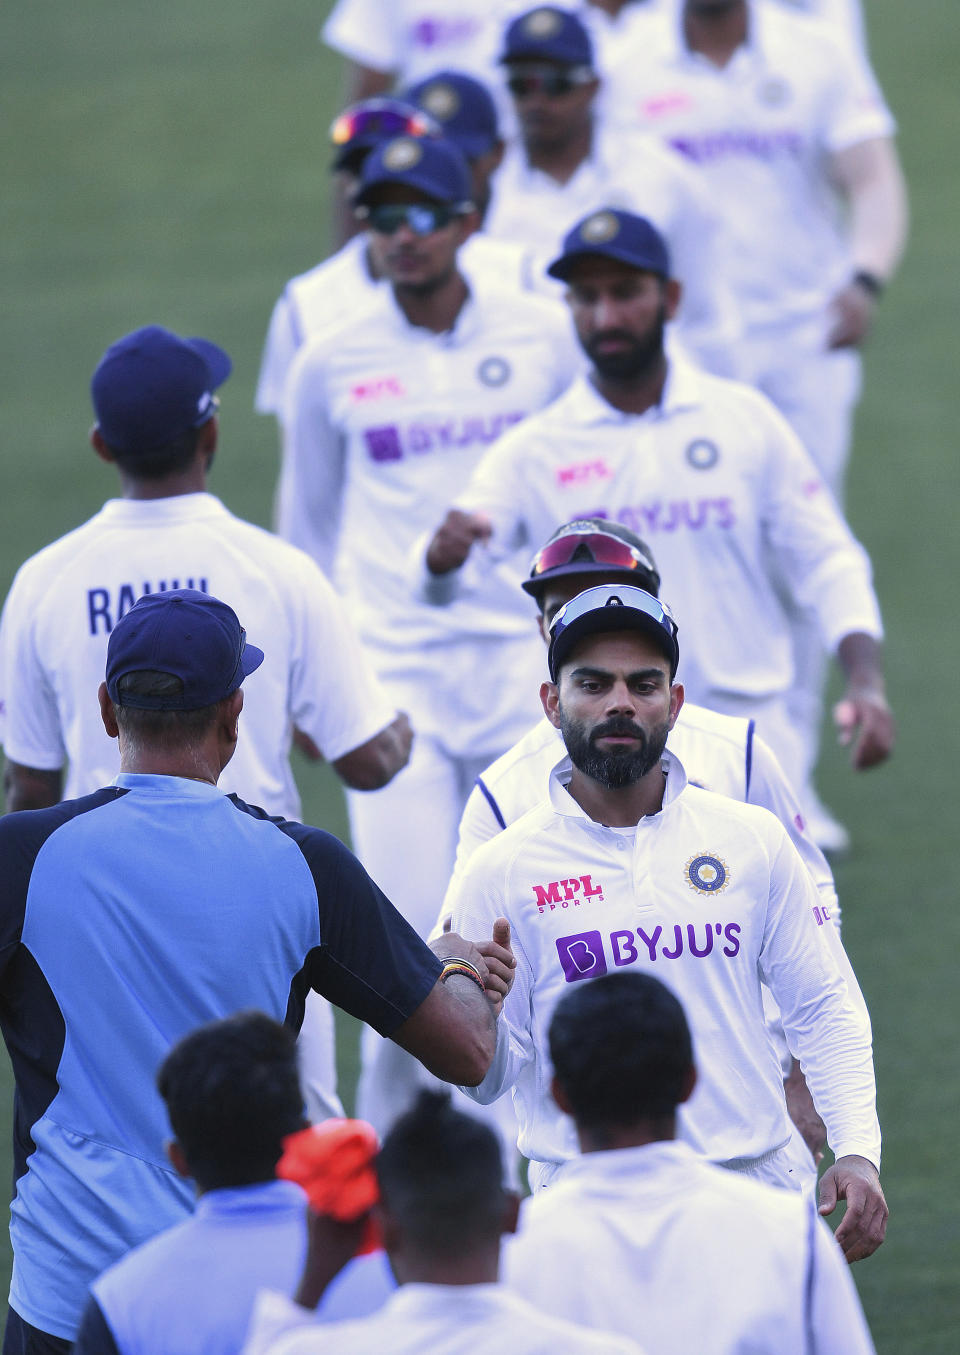 India's Virat Kohli, center right, shakes hands with coach Ravi Shastri following their loss to Australia on the third day of their cricket test match at the Adelaide Oval in Adelaide, Australia, Saturday, Dec. 19, 2020. (AP Photo/David Mariuz)